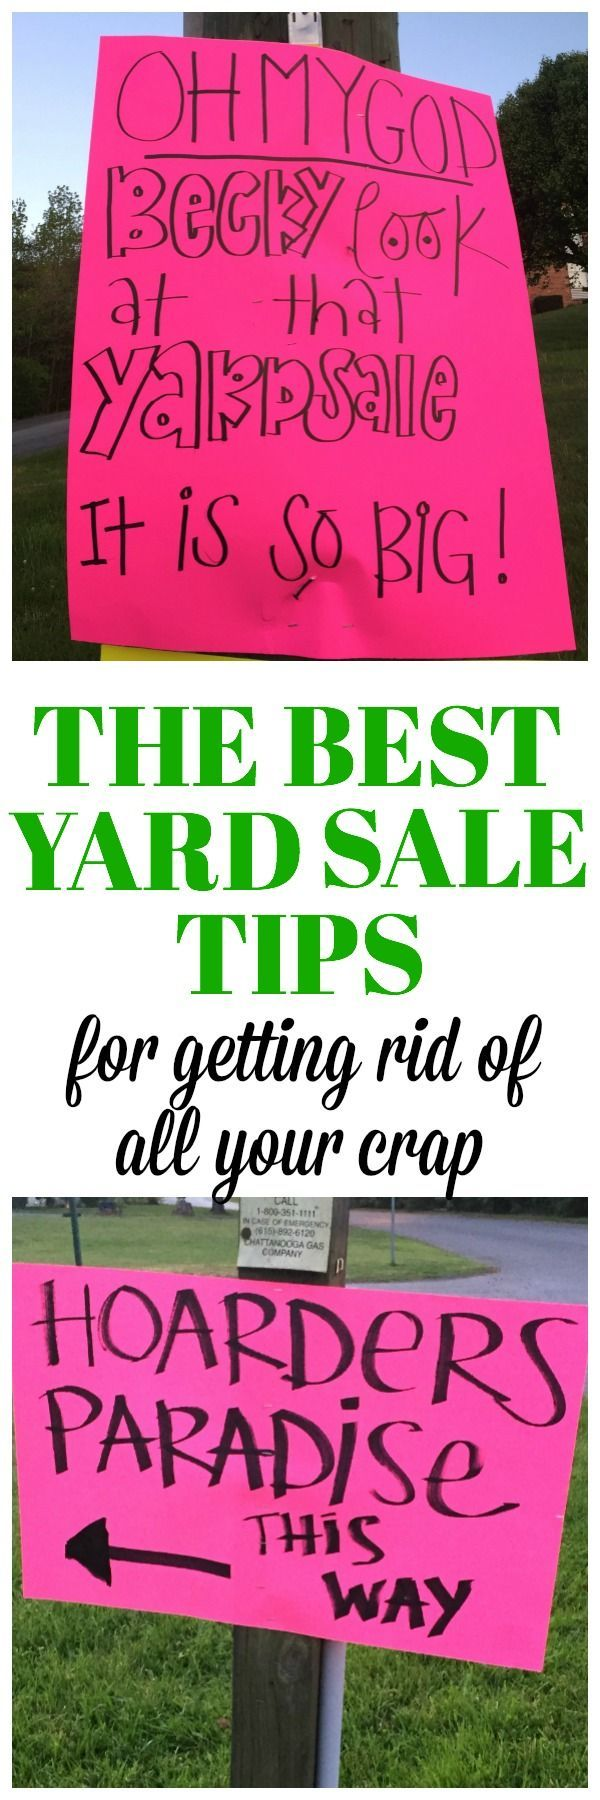 the best yard sale tips to get rid of all your junk pinterest yard sale signs sale signs and yard sale